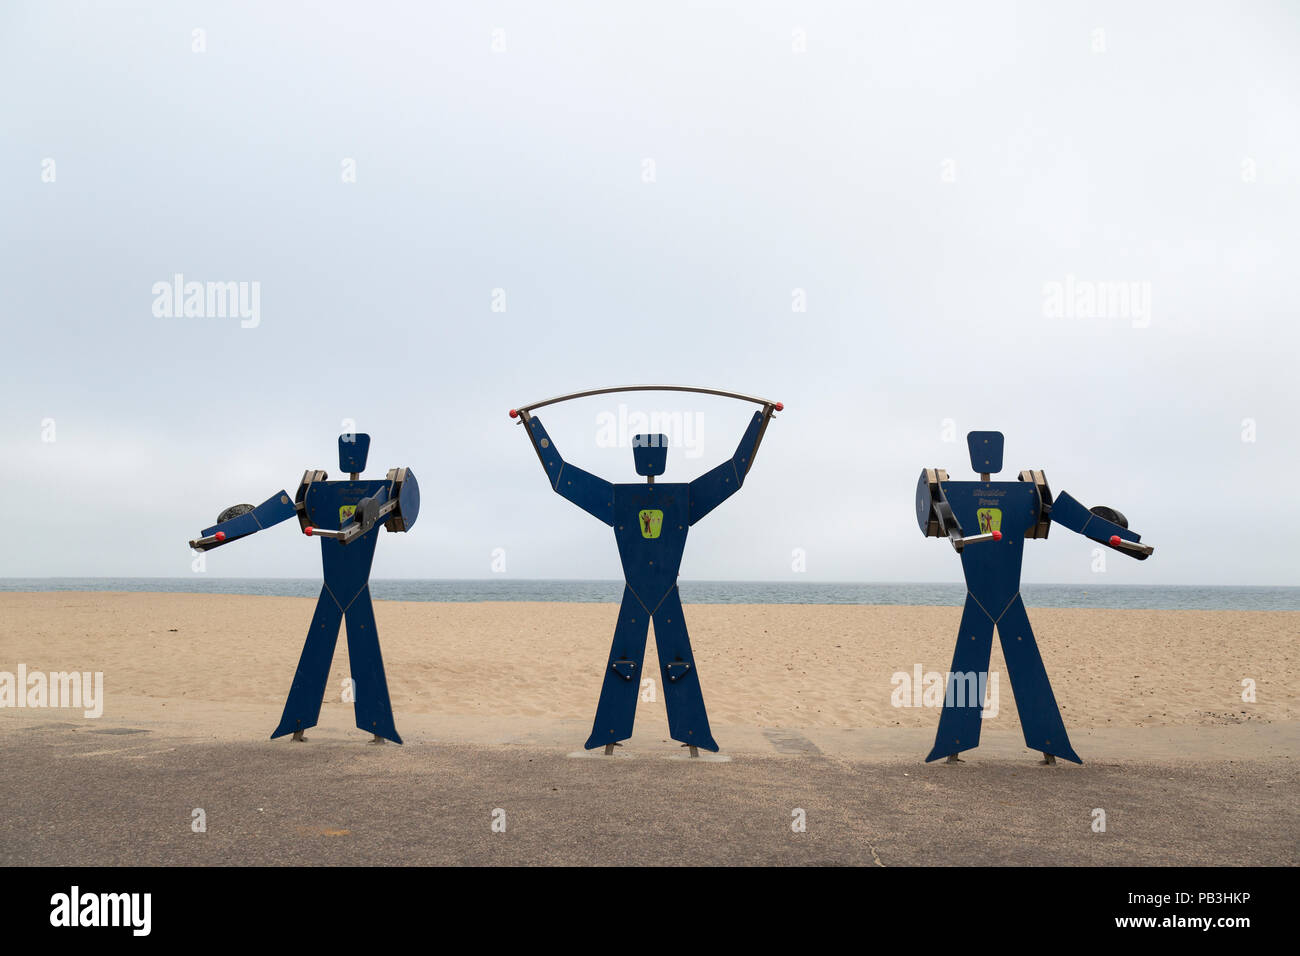 Exercise equipment in the shape of human figures on the sea front at Bournemouth, England, UK. - Stock Image